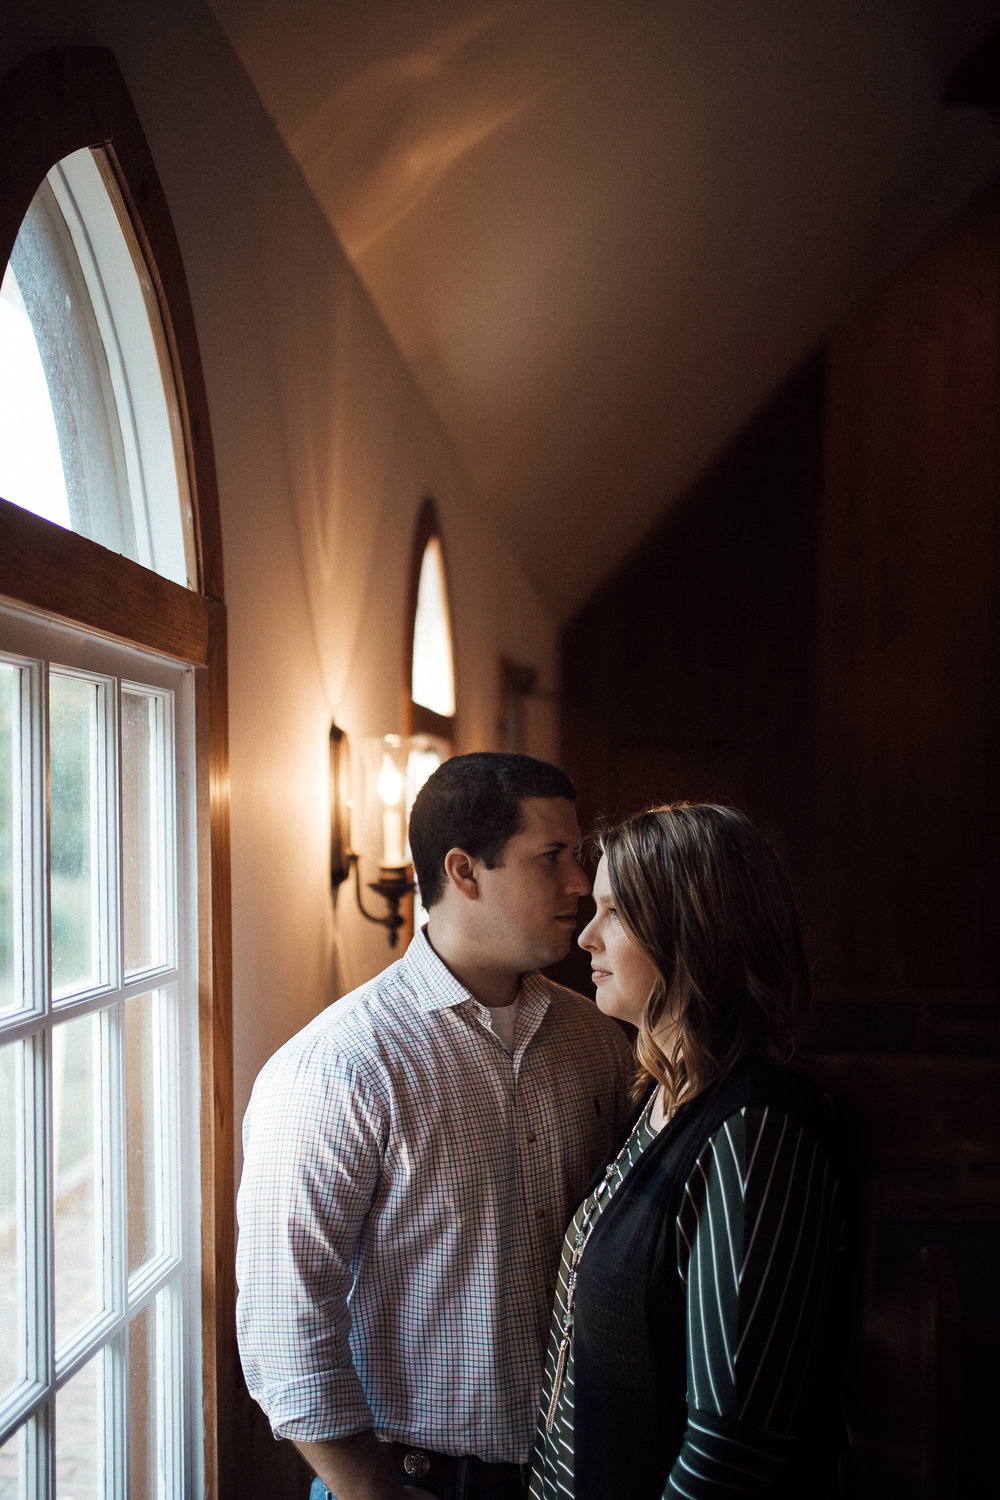 cassie-cook-photography-memphis-wedding-photographer-bonne-terre-engagement-session-wedding-venue